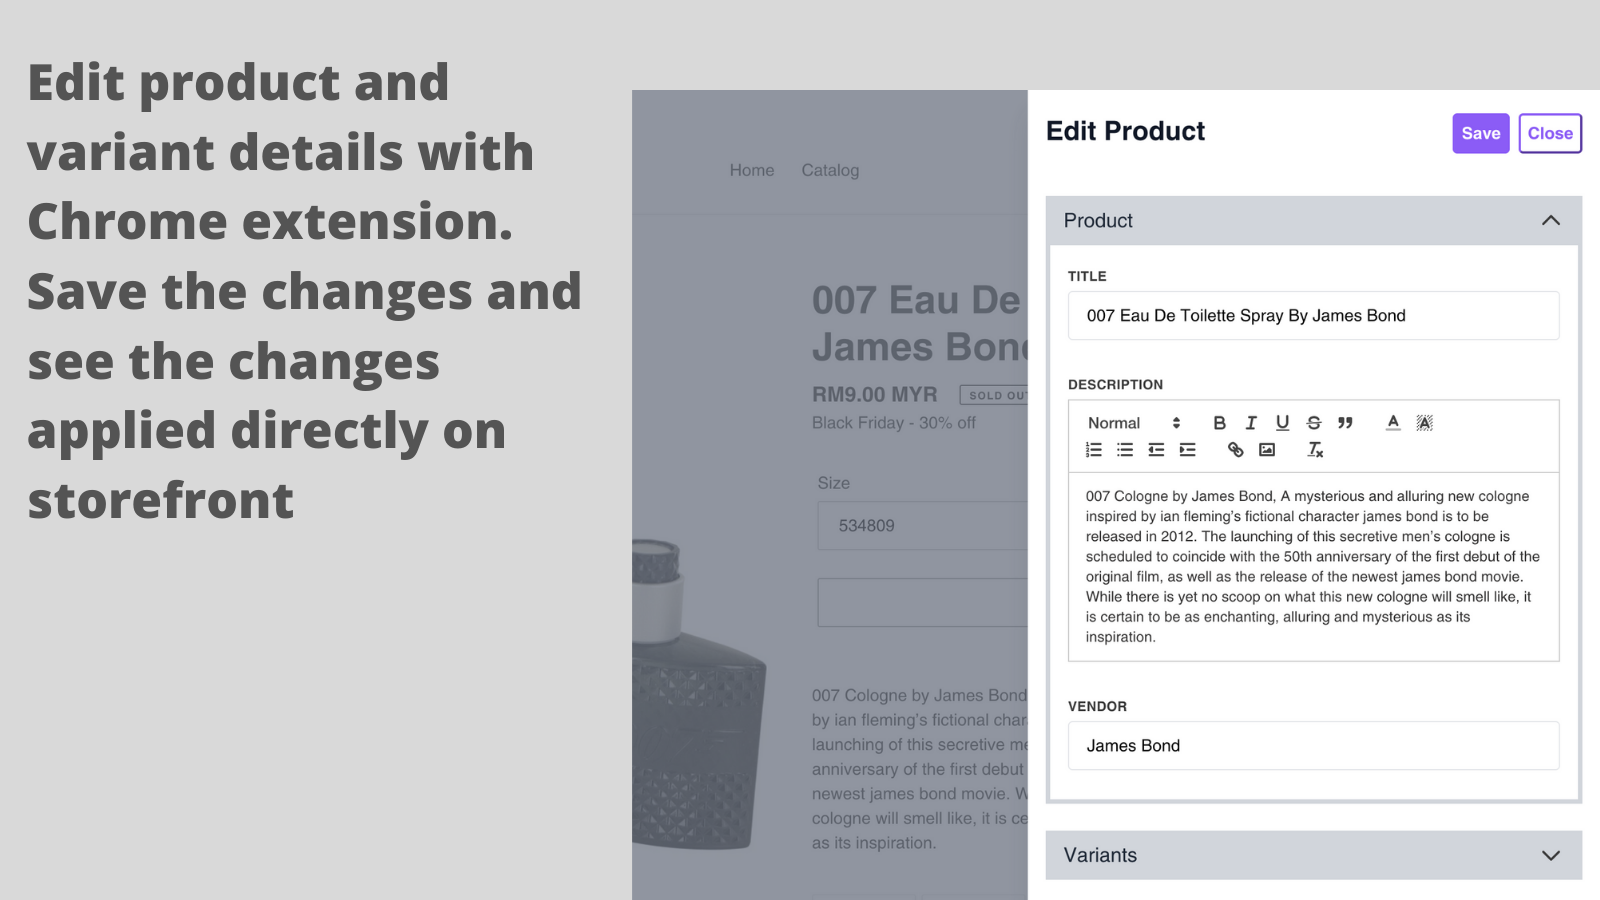 Edit products with Chrome extension